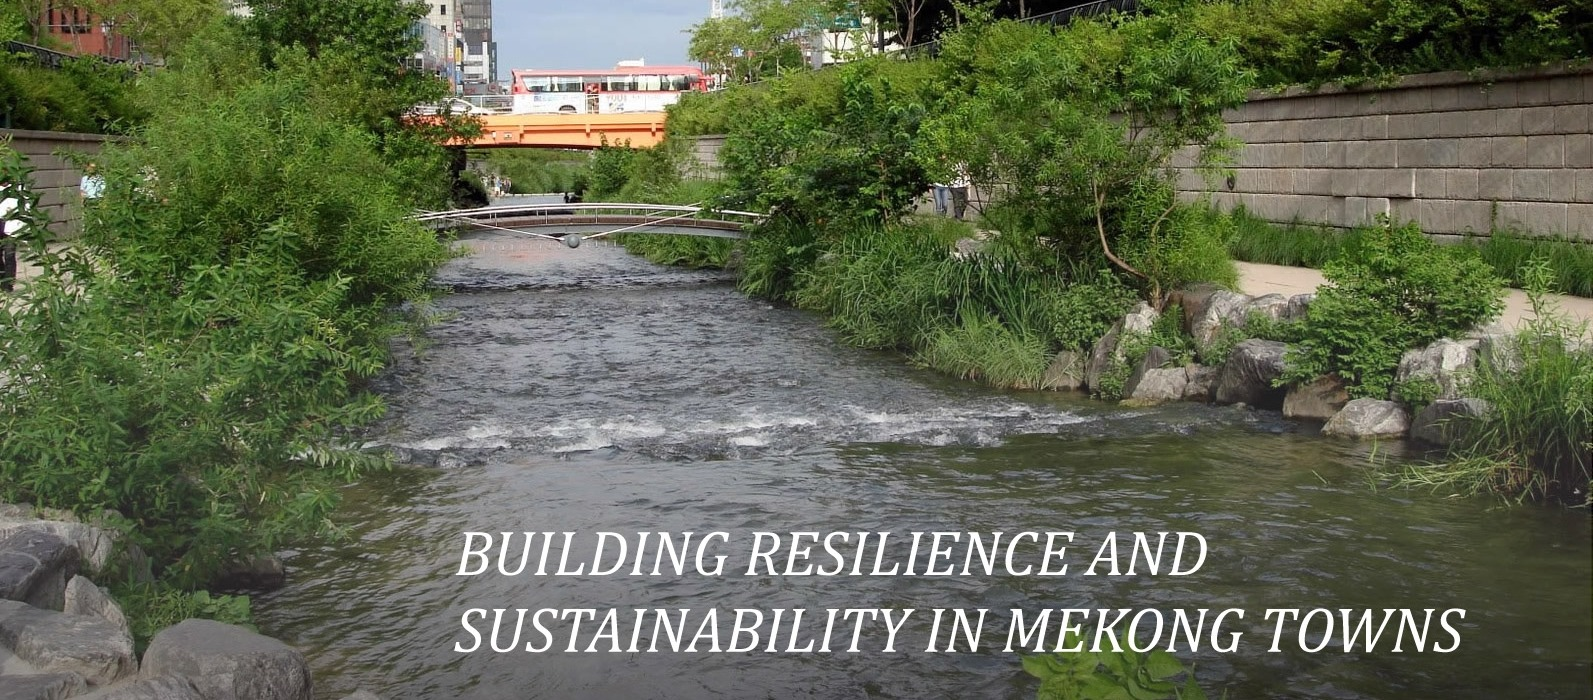 Resource Kit for Building Resilience and Sustainability in Mekong Towns